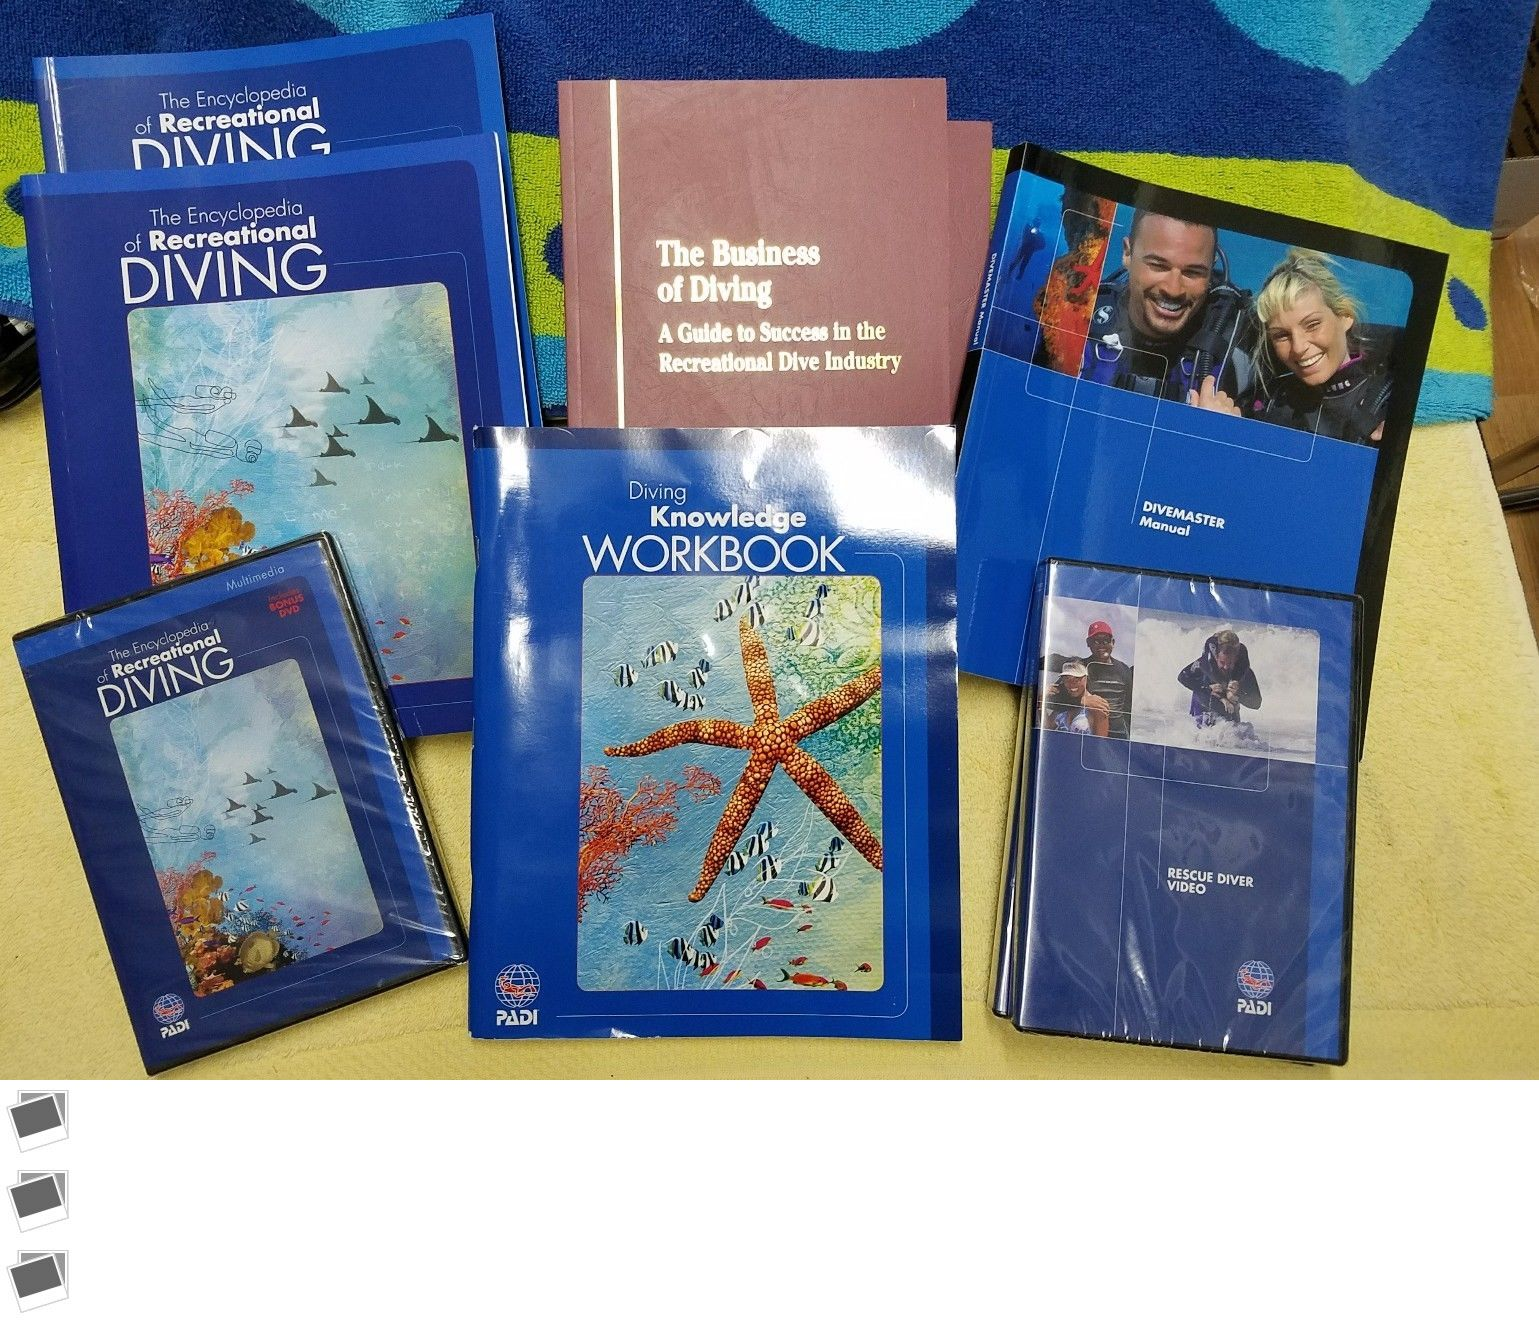 Books and Video 73993: Padi Manuals Miscellaneous Choose Your Title Scuba  Diving Knowledge -> BUY IT NOW ONLY: $13 on #eBay #books #video #manuals ...